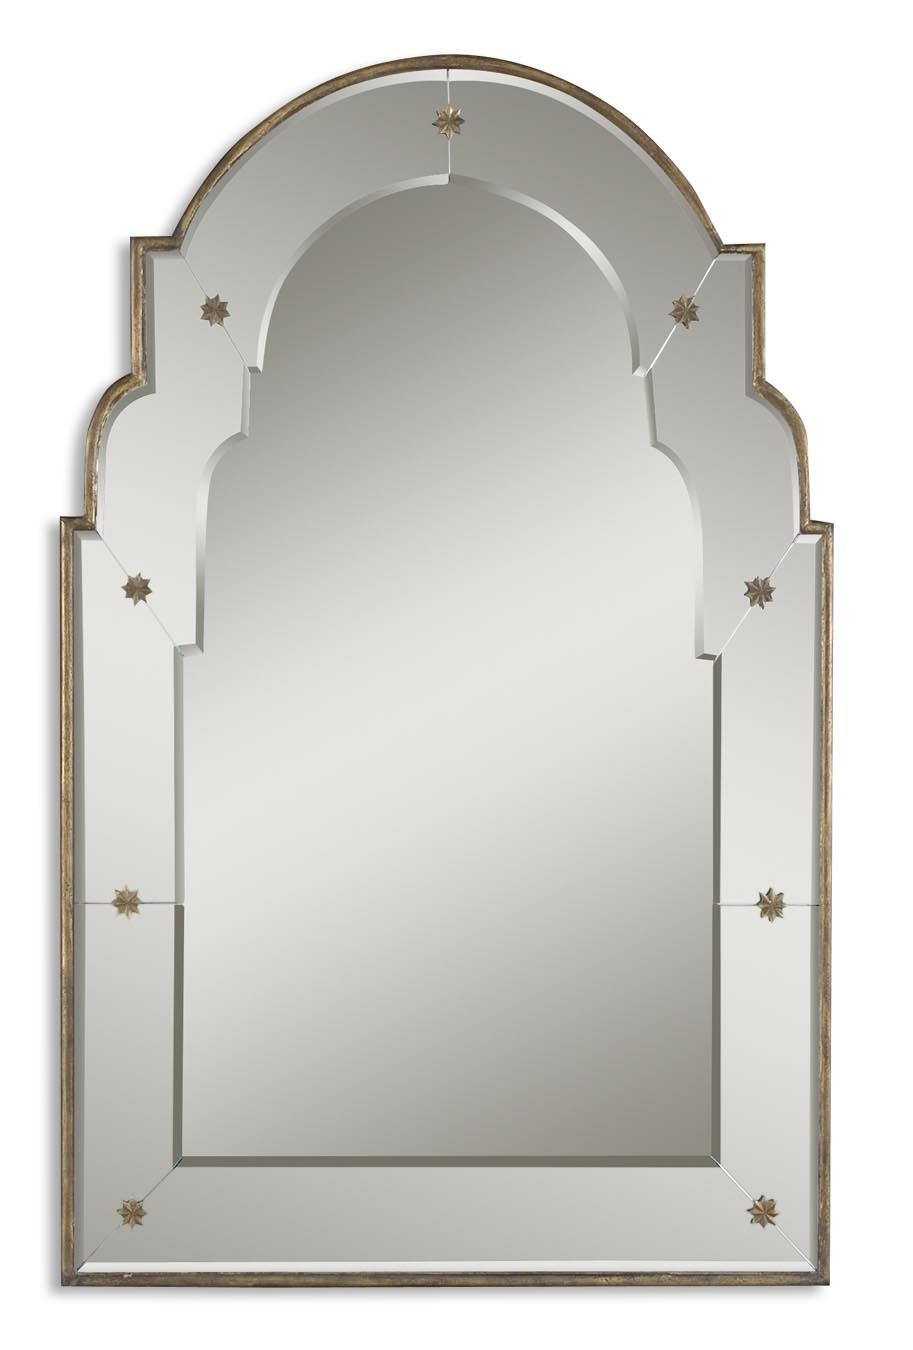 Uttermost Gella Small Arched Mirror 12595 B Within Gold Arch Mirror (Image 20 of 20)